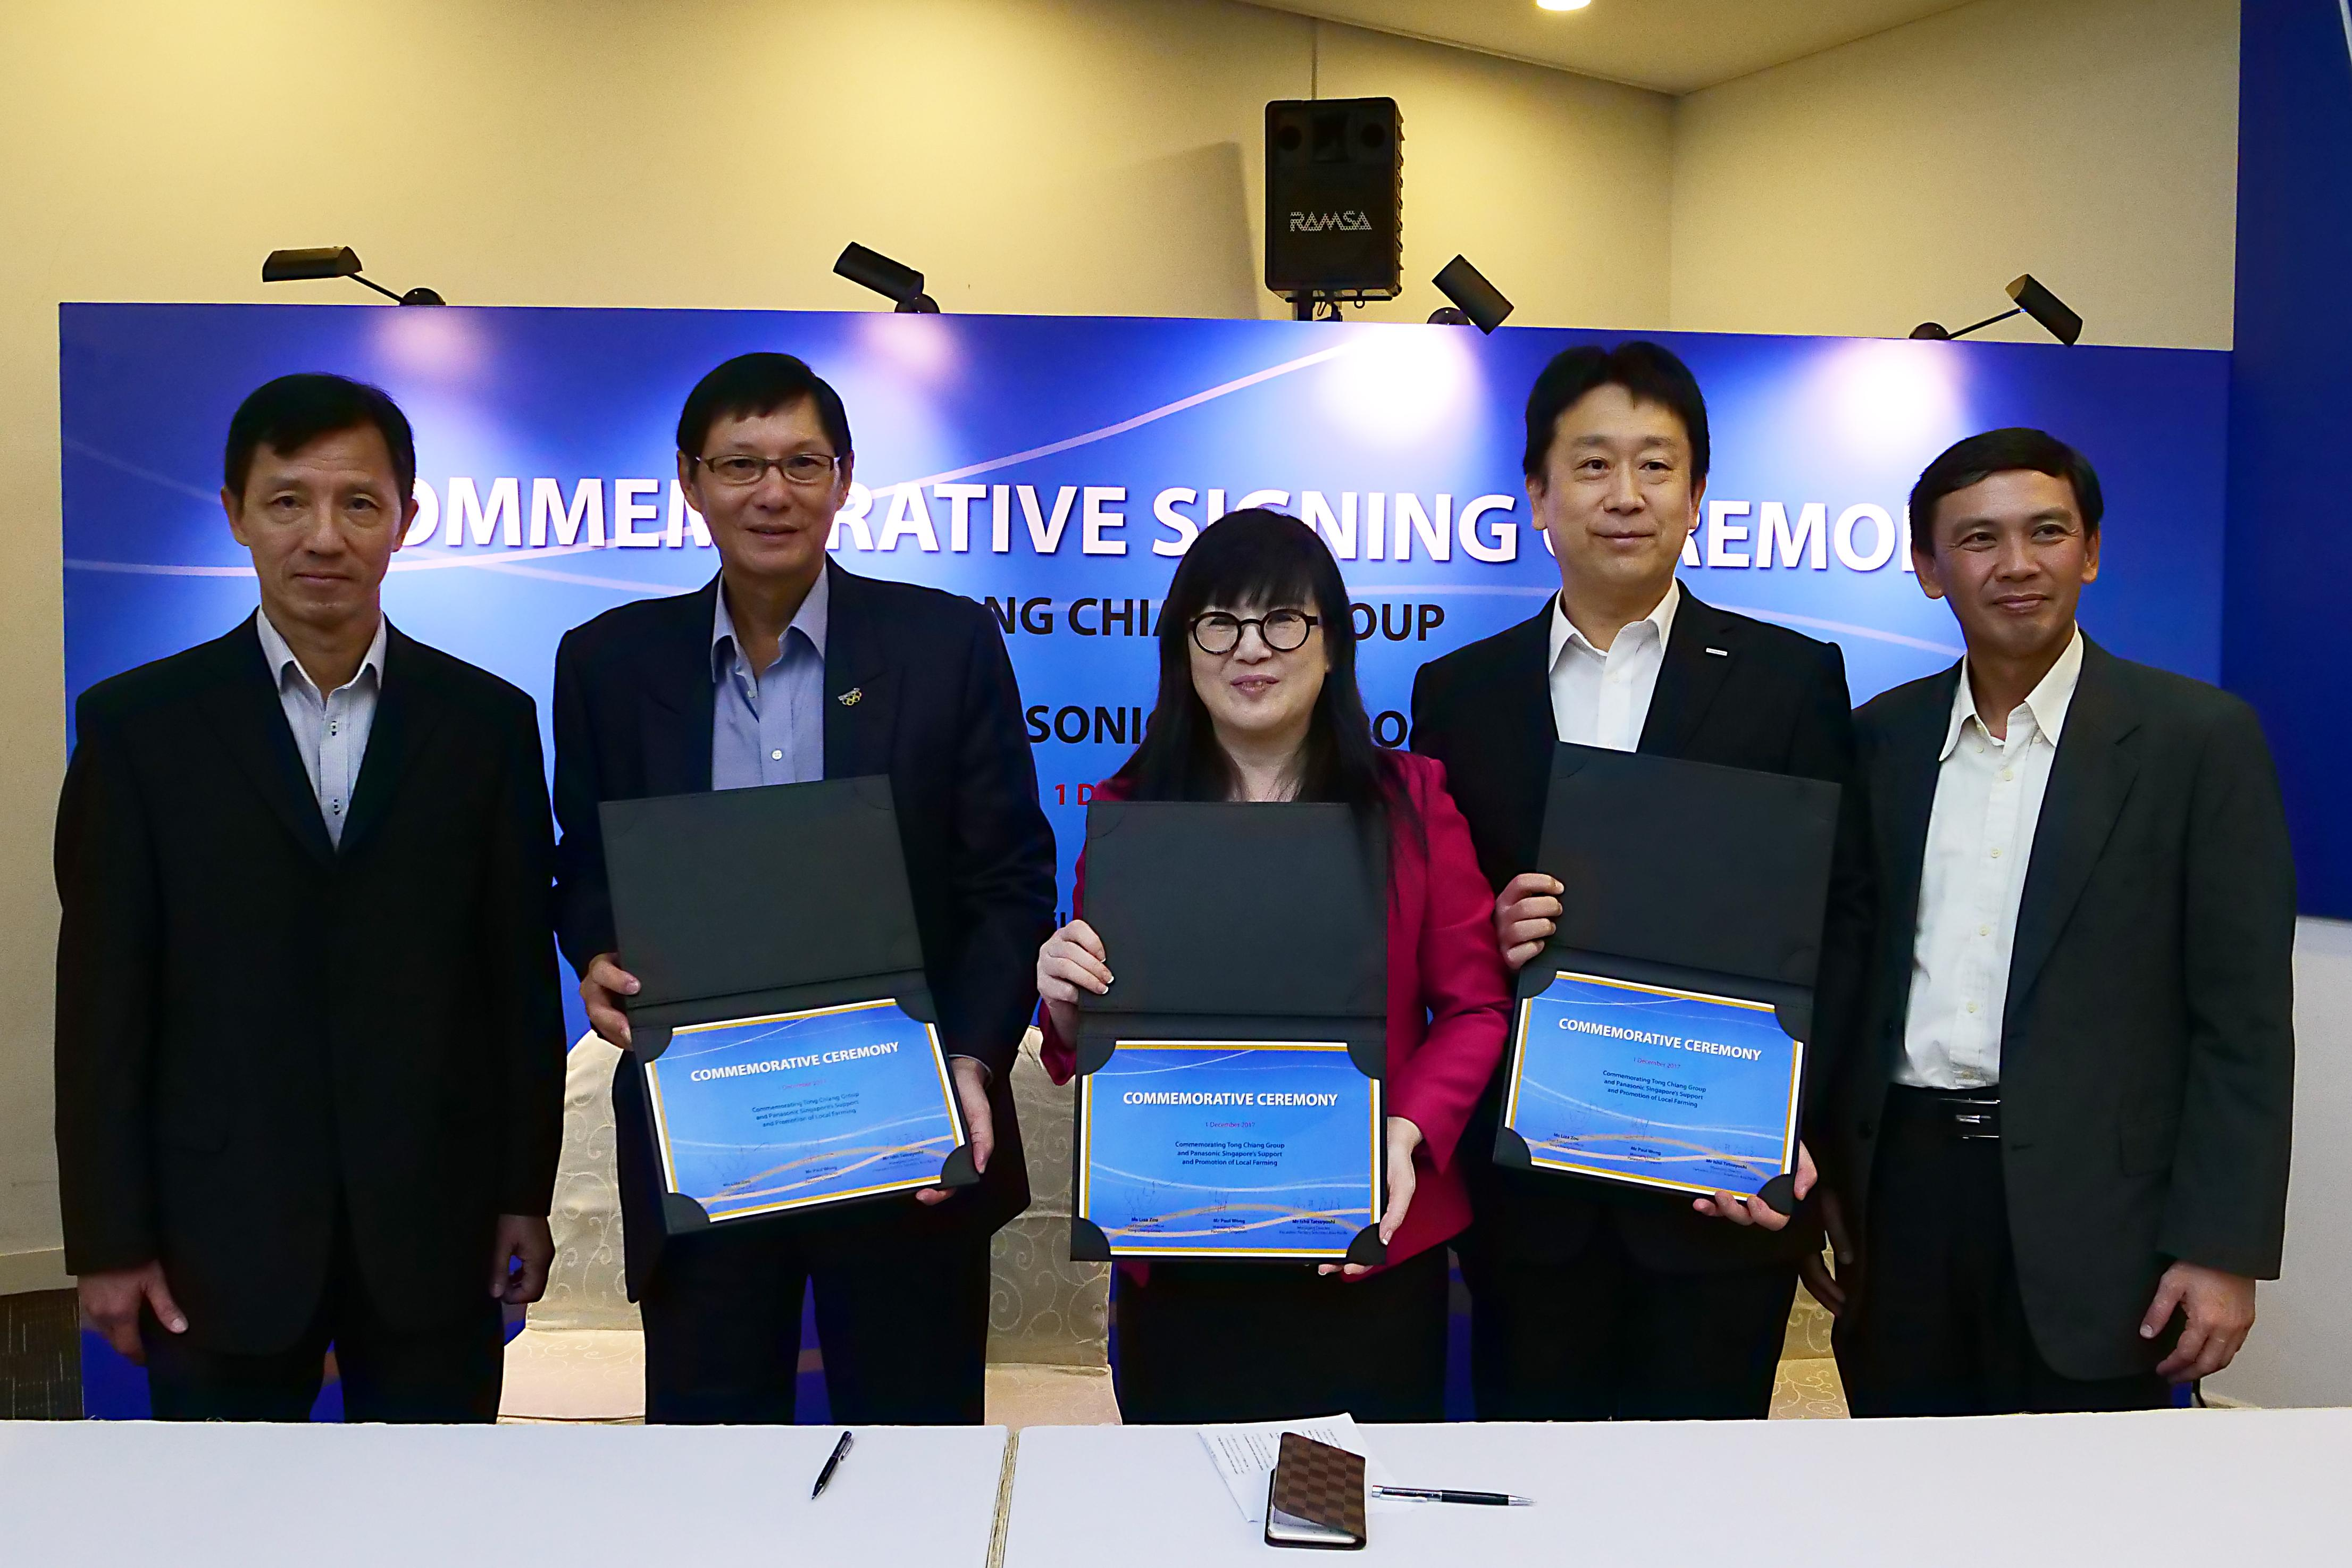 photo: at the signing ceremony